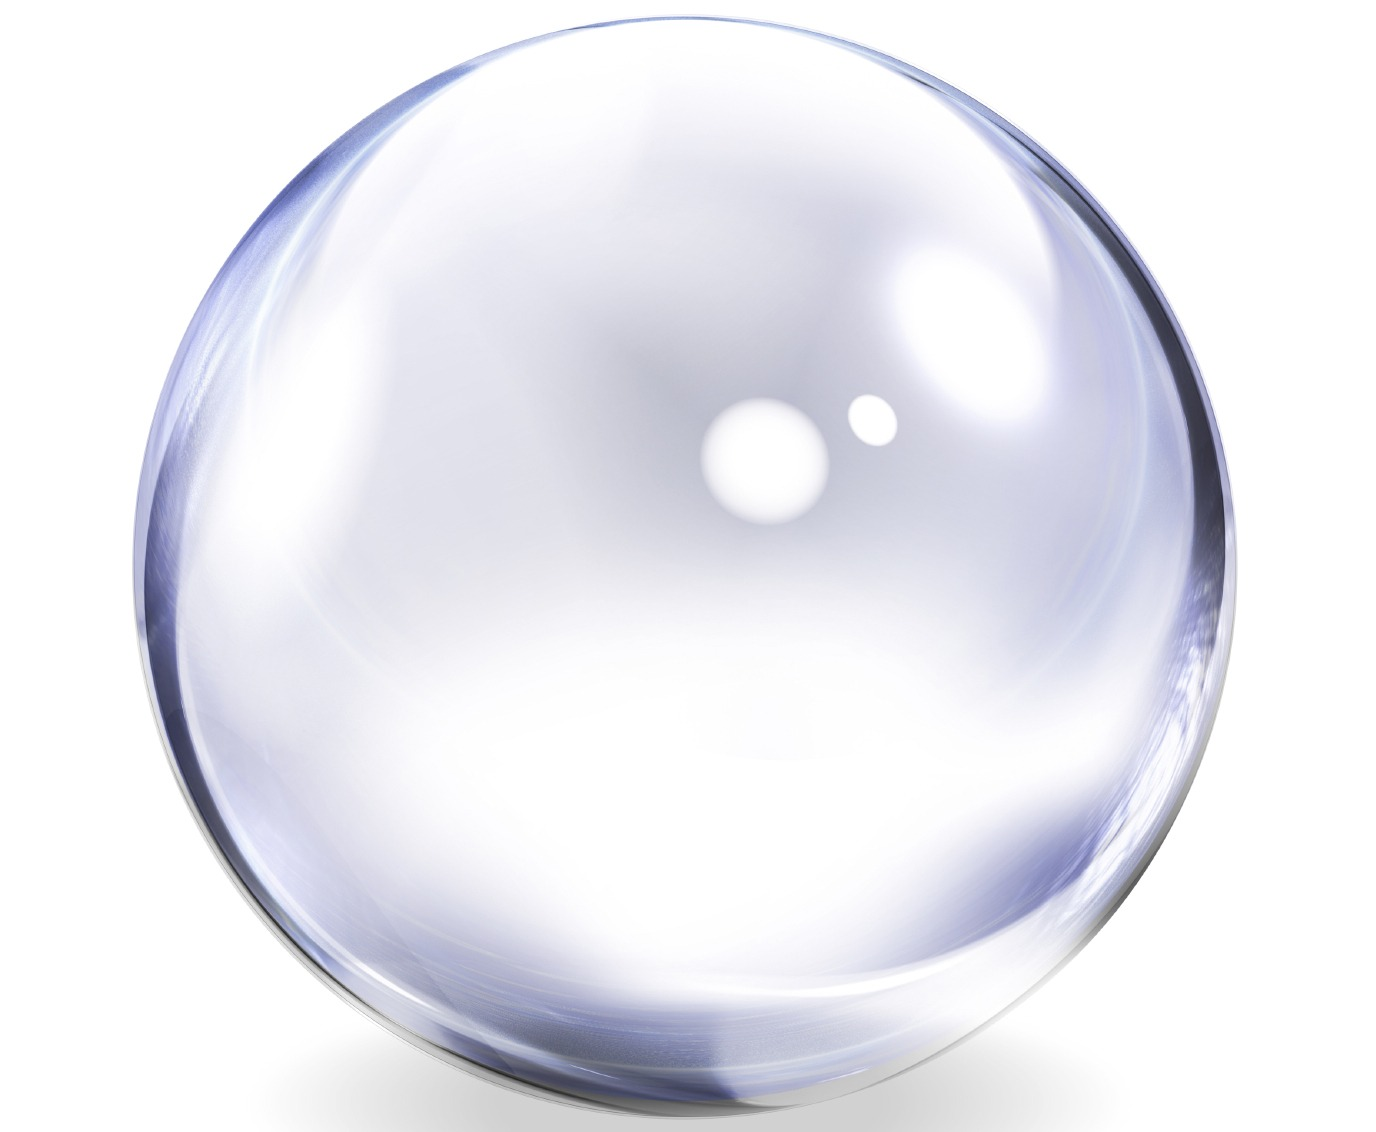 Weekly Economic News Roundup and financial bubbles